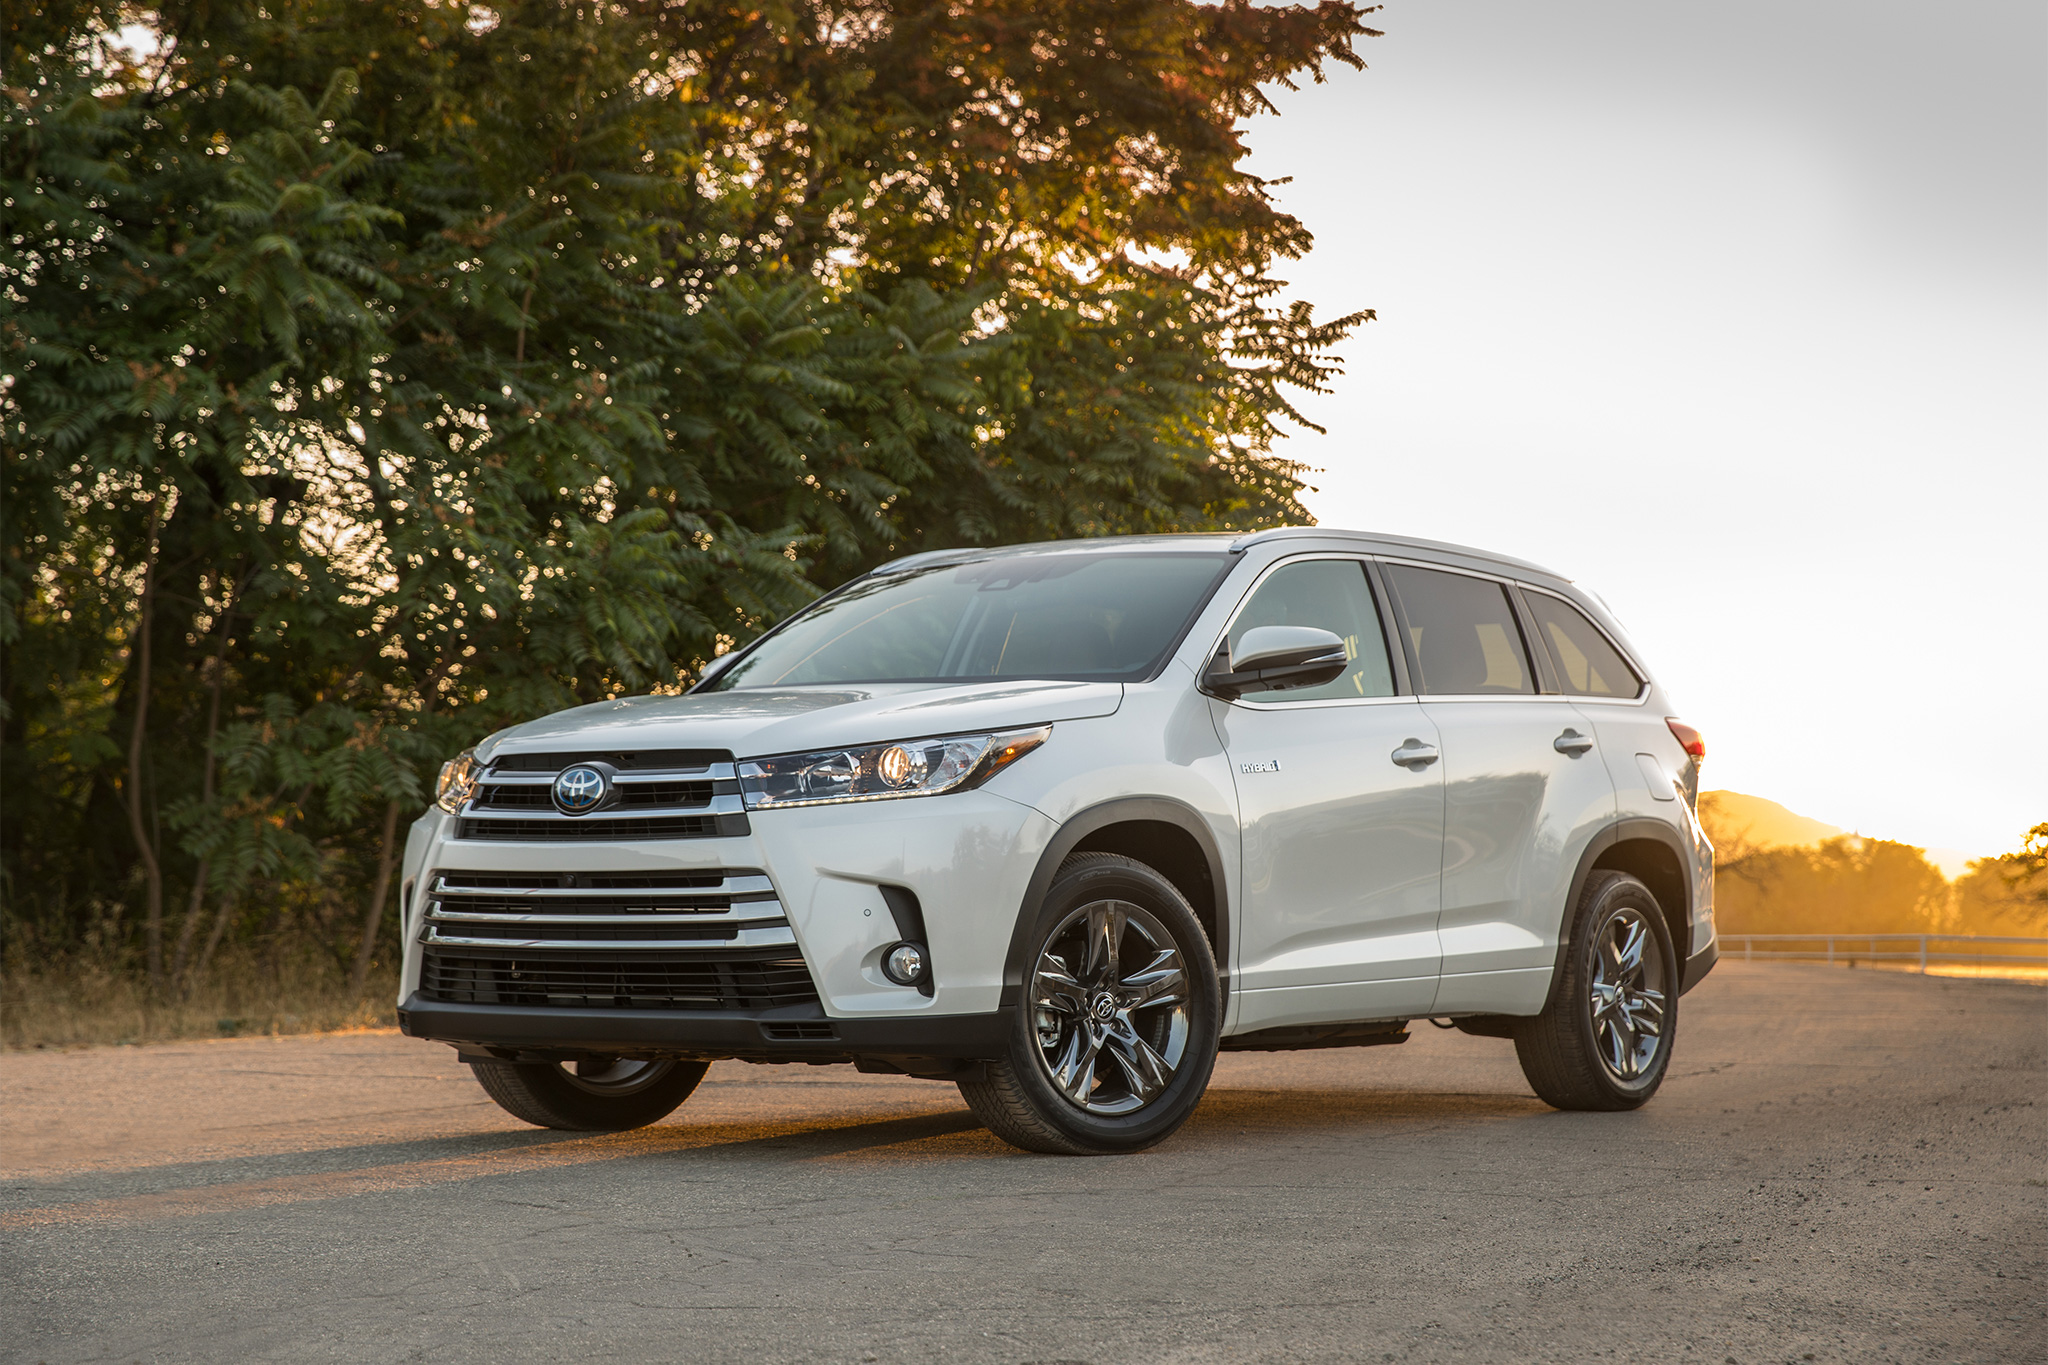 nissan and toyota hybrid engines See the advantages of owning a 2018 toyota highlander hybrid limited vs 2018 nissan pathfinder in this vehicle comparison on buyatoyotacom, an official toyota site.